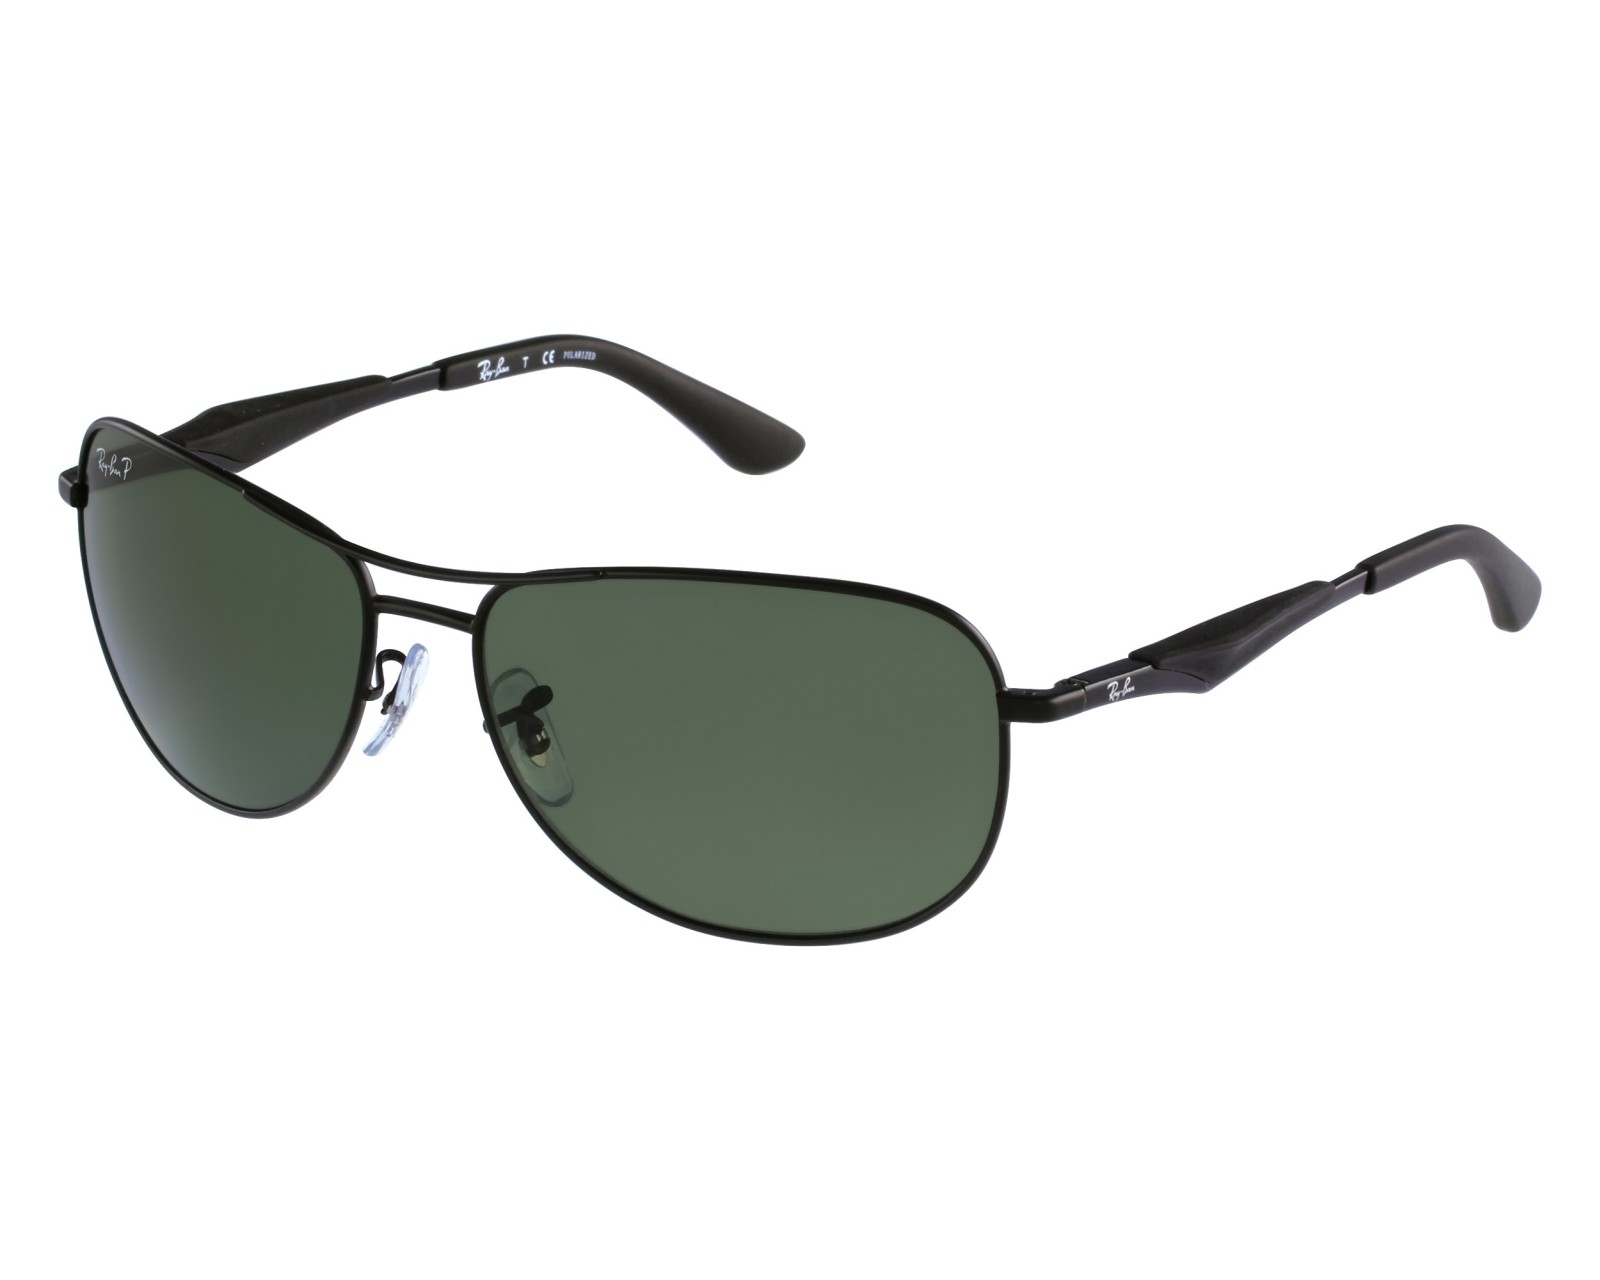 dbd605858e thumbnail Sunglasses Ray-Ban RB-3519 006 9A - Black front view